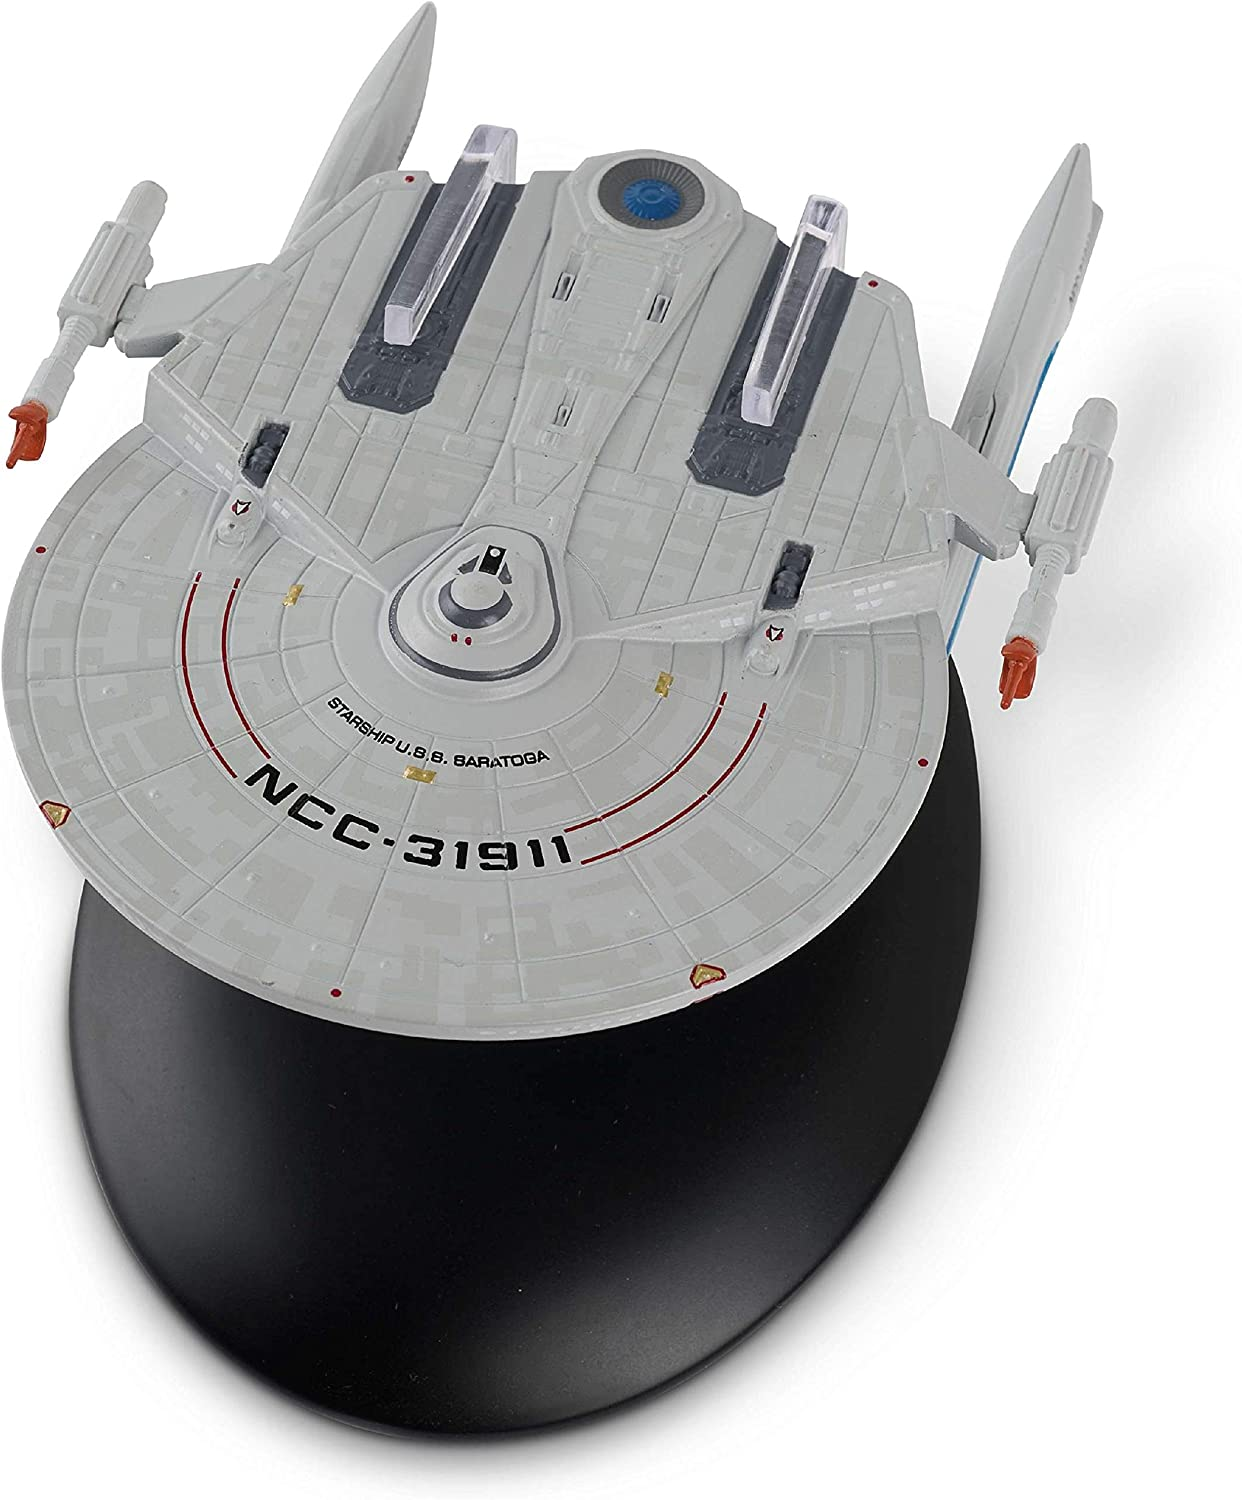 Eaglemoss Hero Collector Star Trek The Official Starship Collection | U.S.S. Saratoga NCC-31911